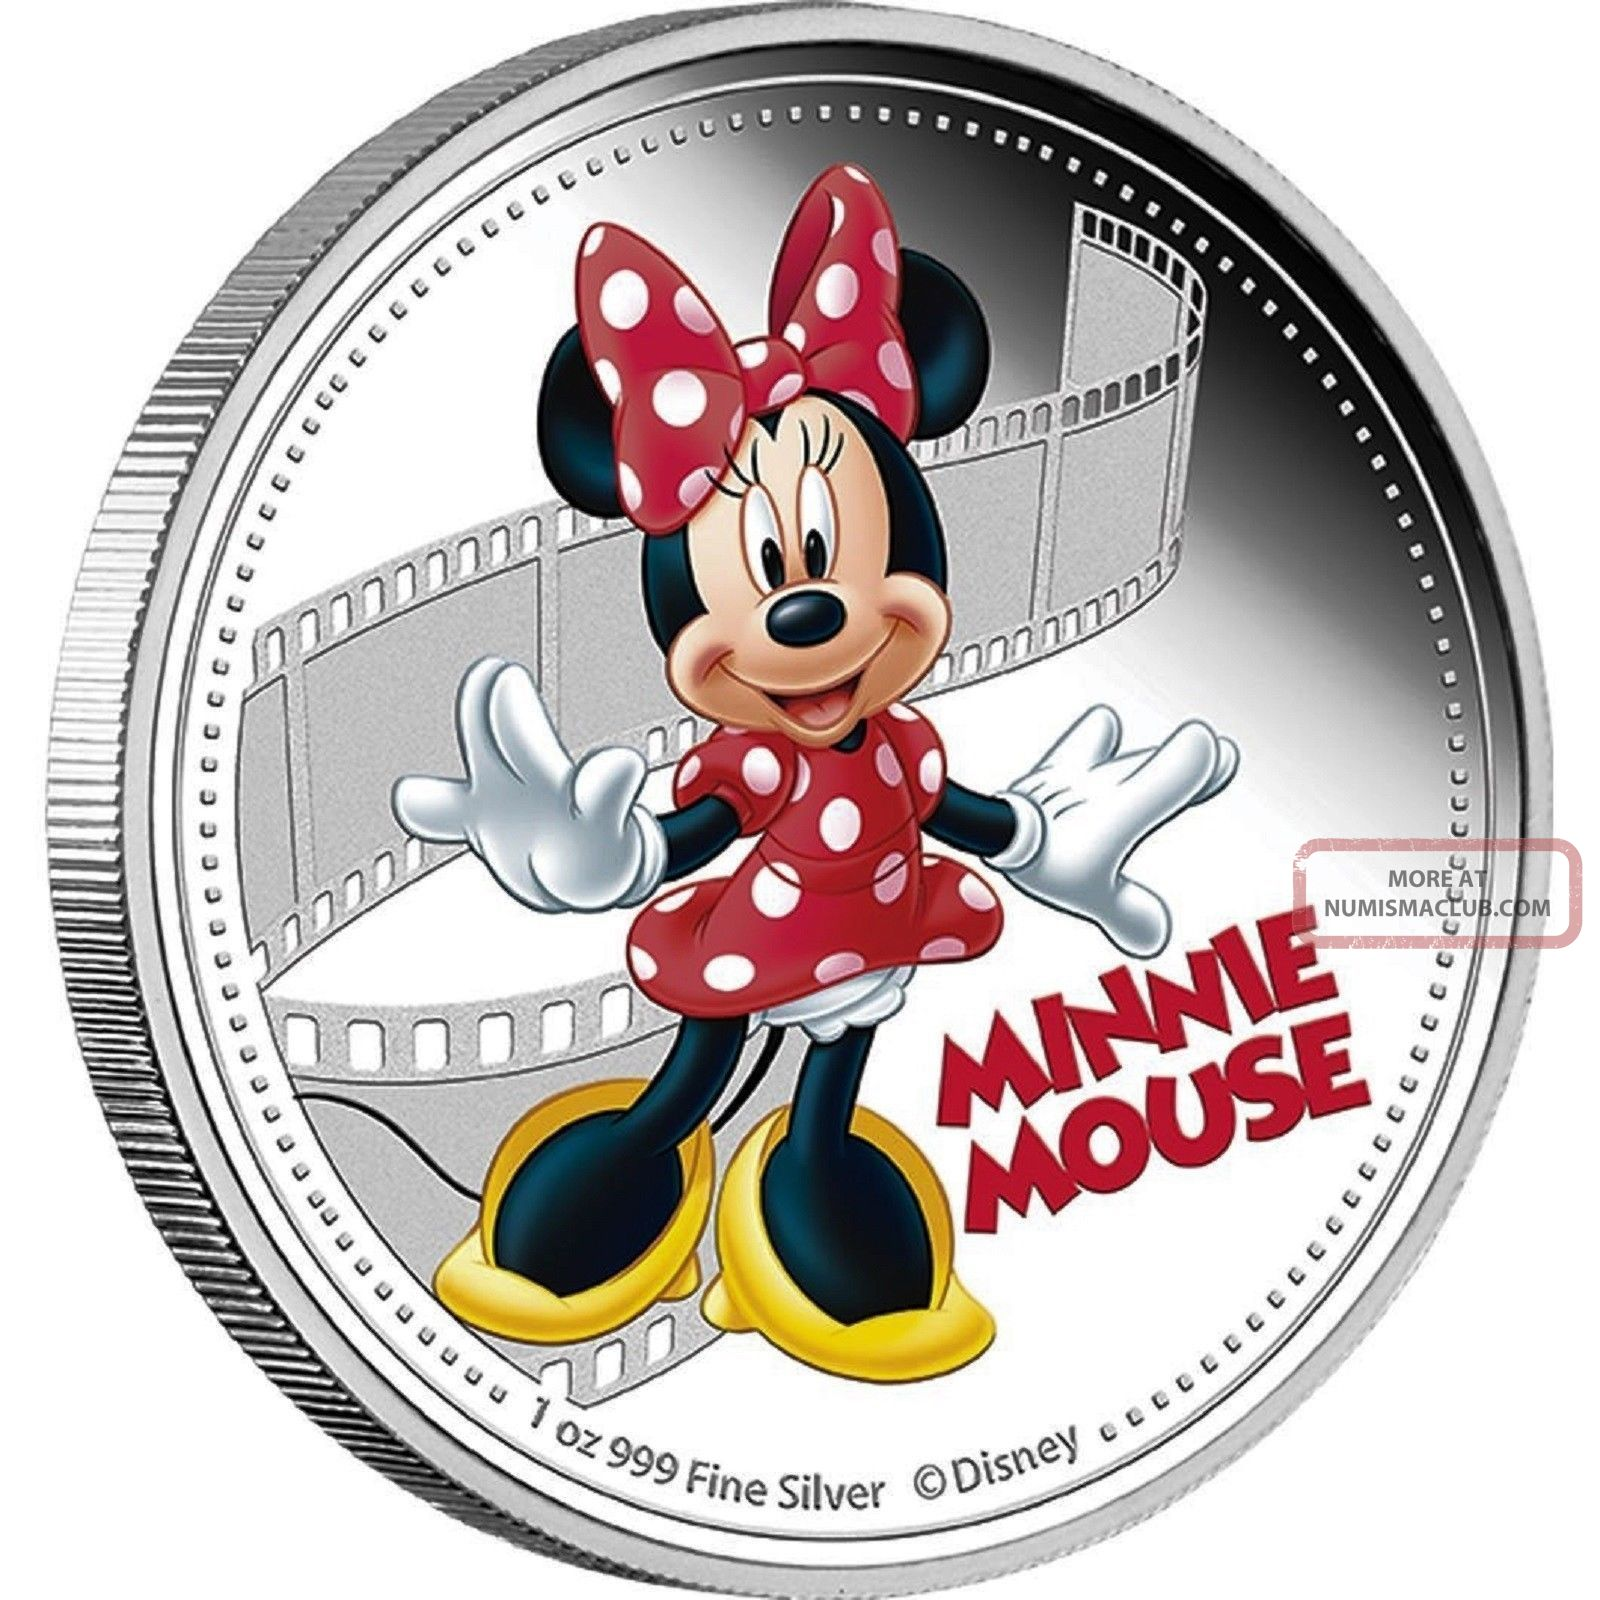 Minnie Mouse 2014 - $2 D Isney Mickey & Friends 1 Oz Silver Proof Coin Coins: World photo